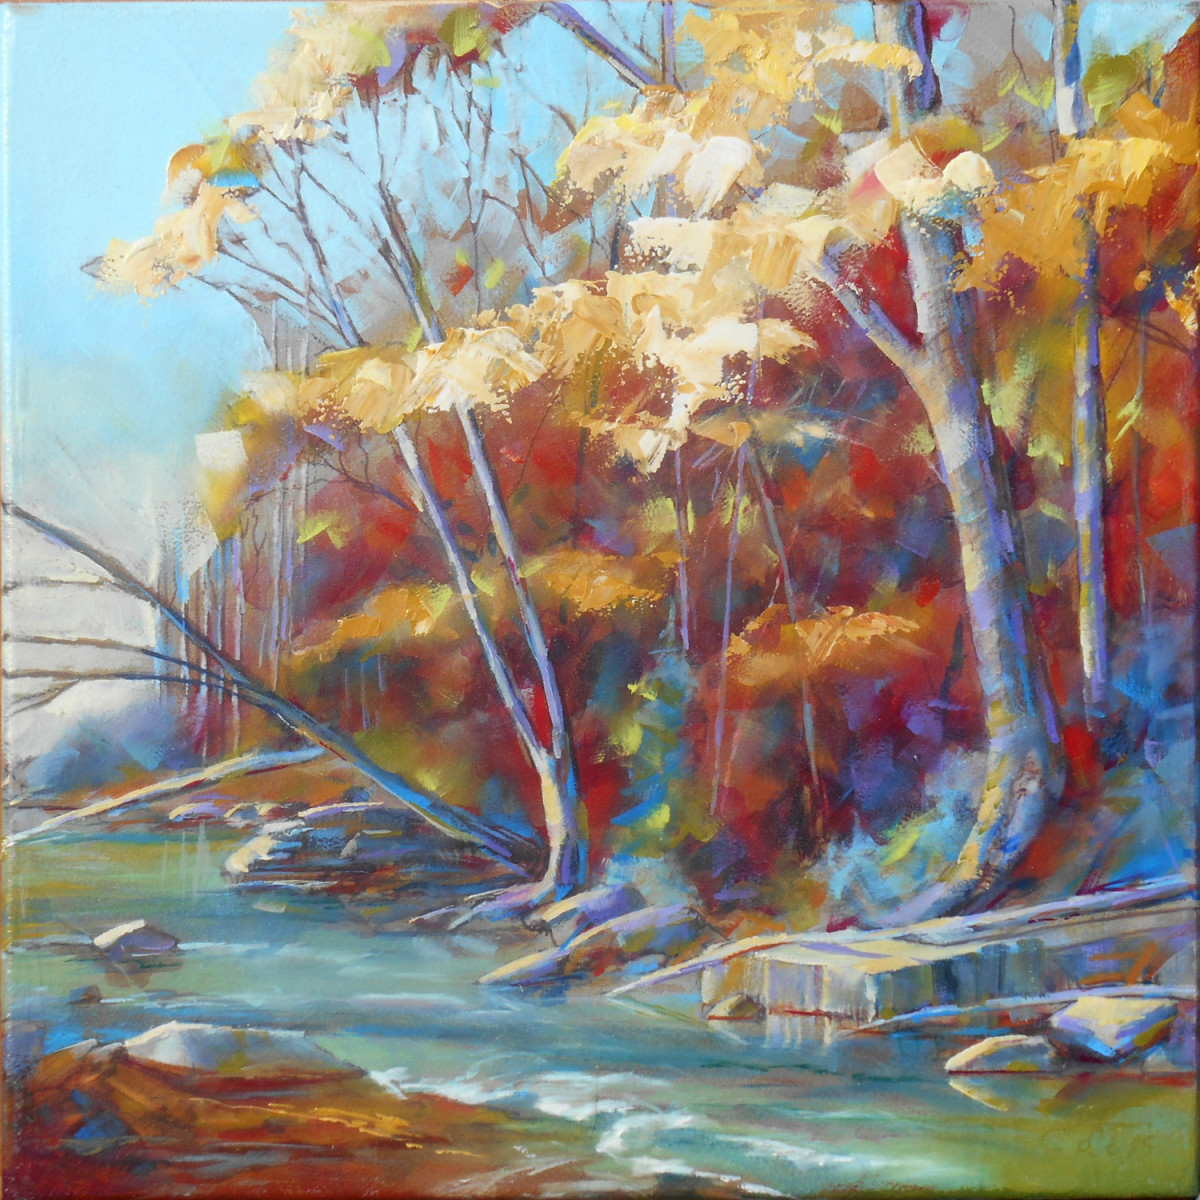 Autumn on the Riverbank by Pat Cross